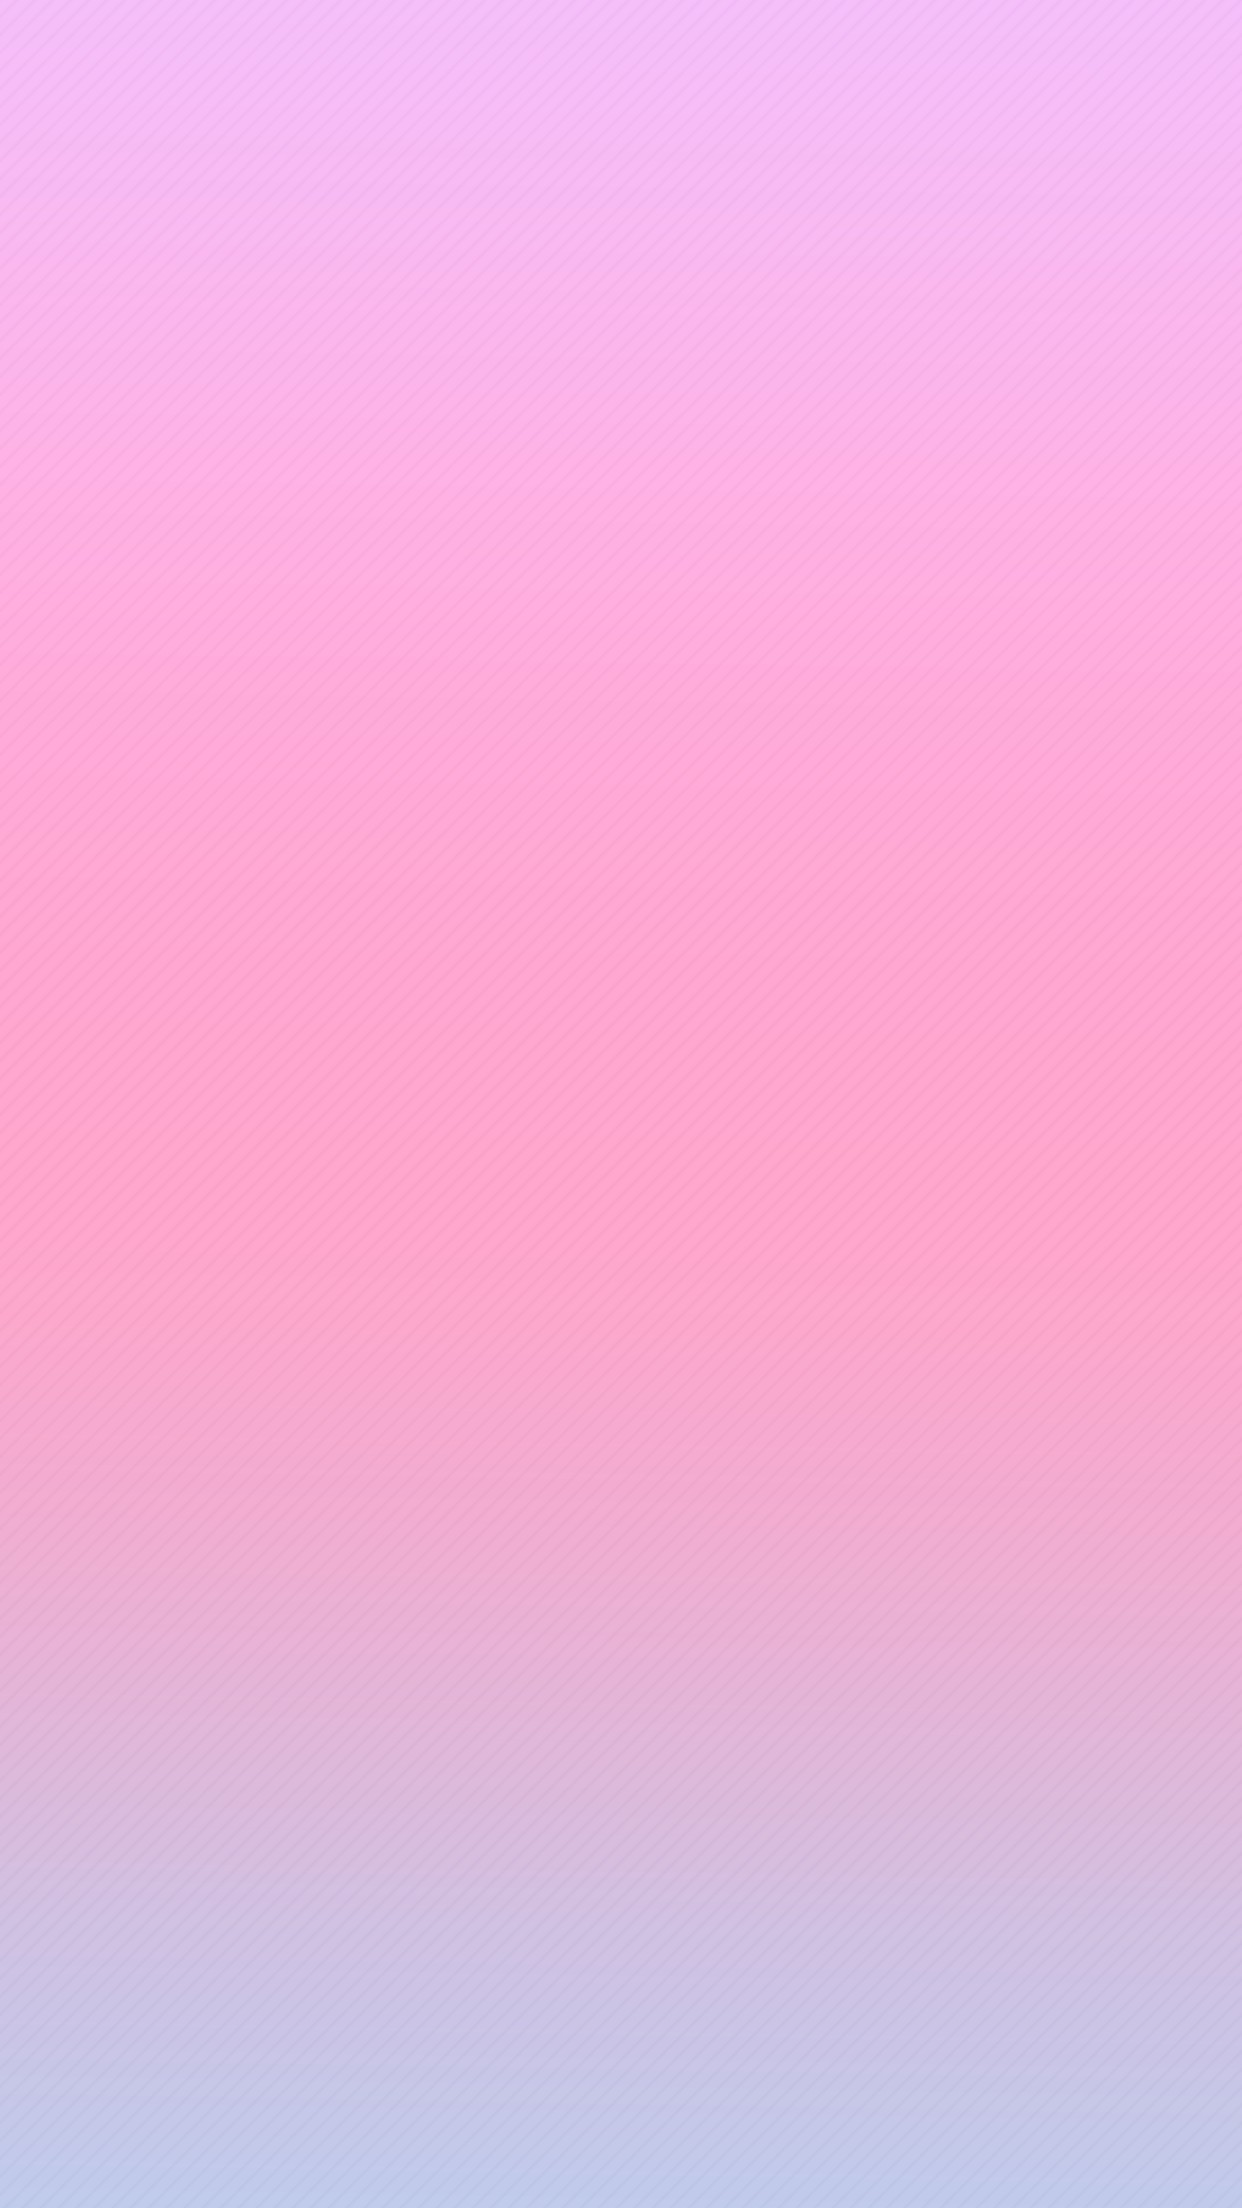 1242x2208 Wallpaper, background, iPhone, Android, HD, pink, purple, gradient,